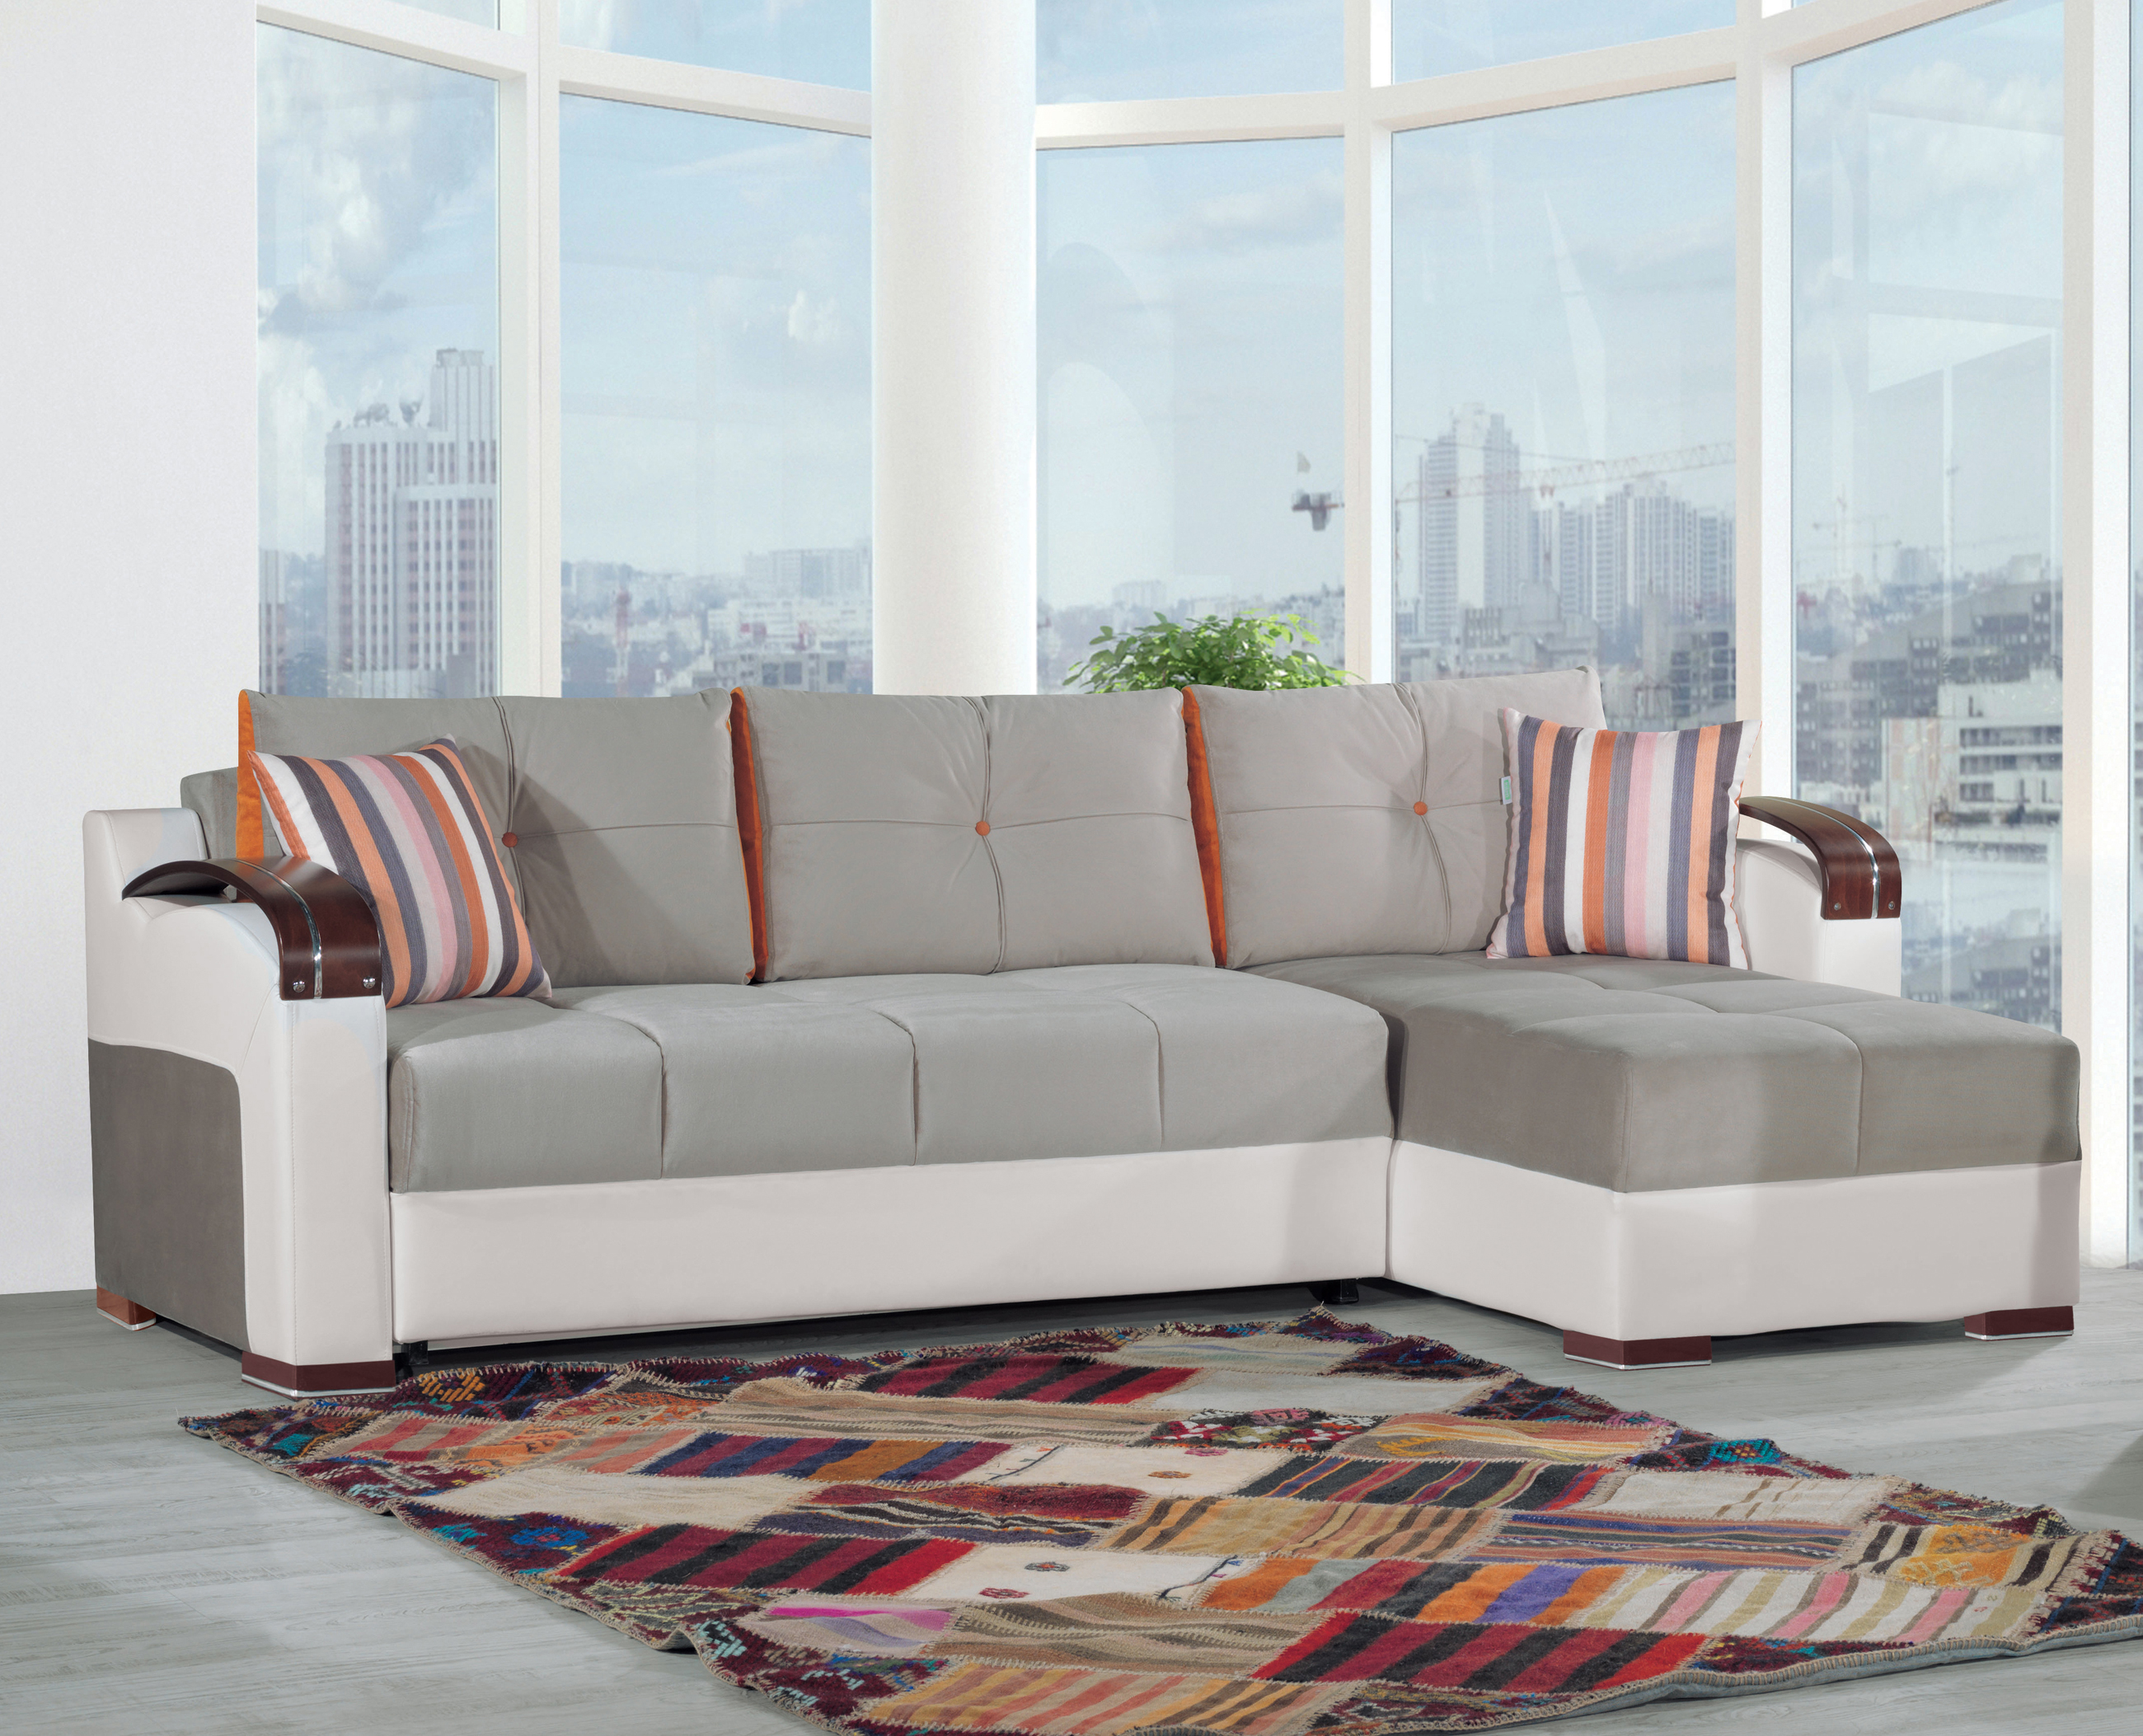 Divan Deluxe Golf Gray Convertible Sectional By Casamode - Divans convertibles